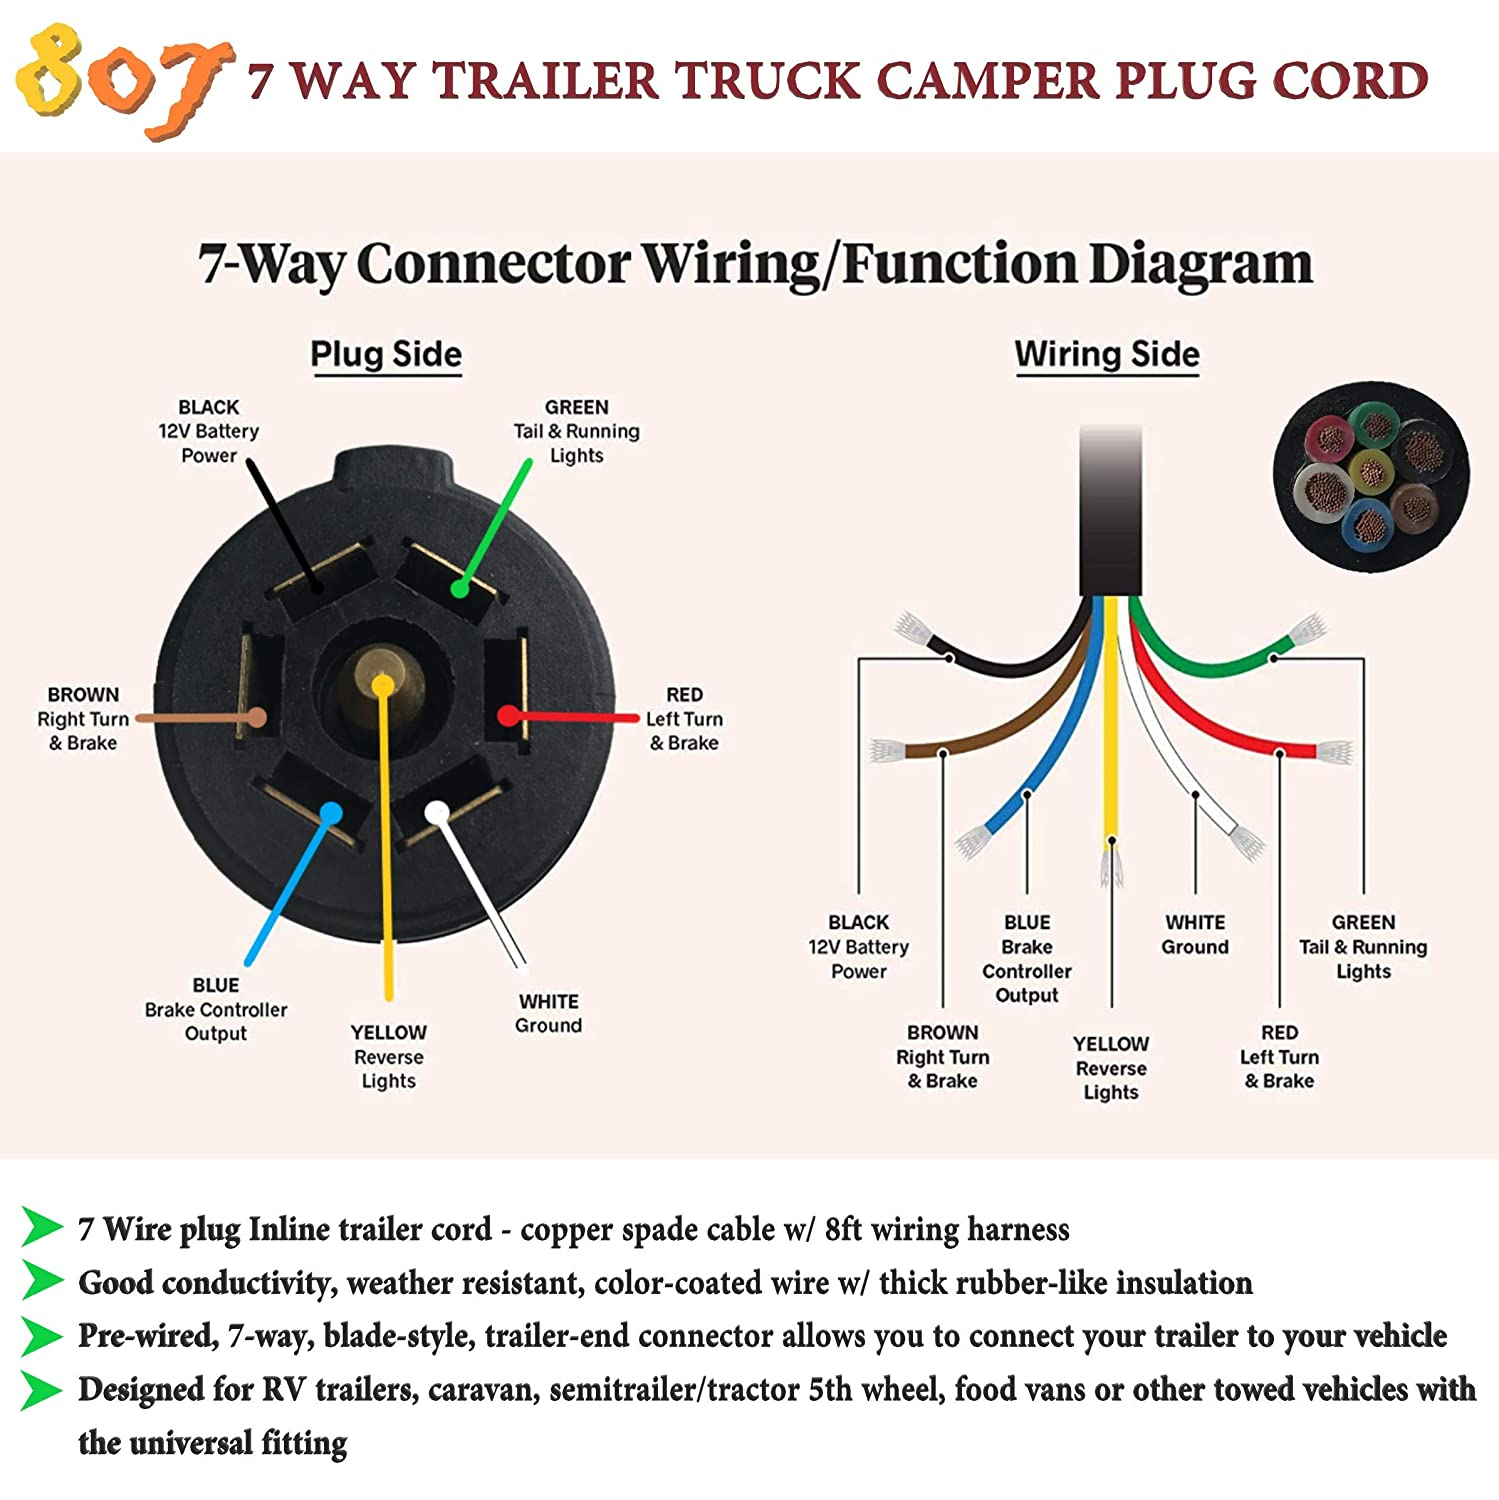 DIAGRAM] 7 Plug Truck Wiring Diagram FULL Version HD Quality Wiring Diagram  - LOTT-DIAGRAM.RADD.FRDiagram Database - Radd